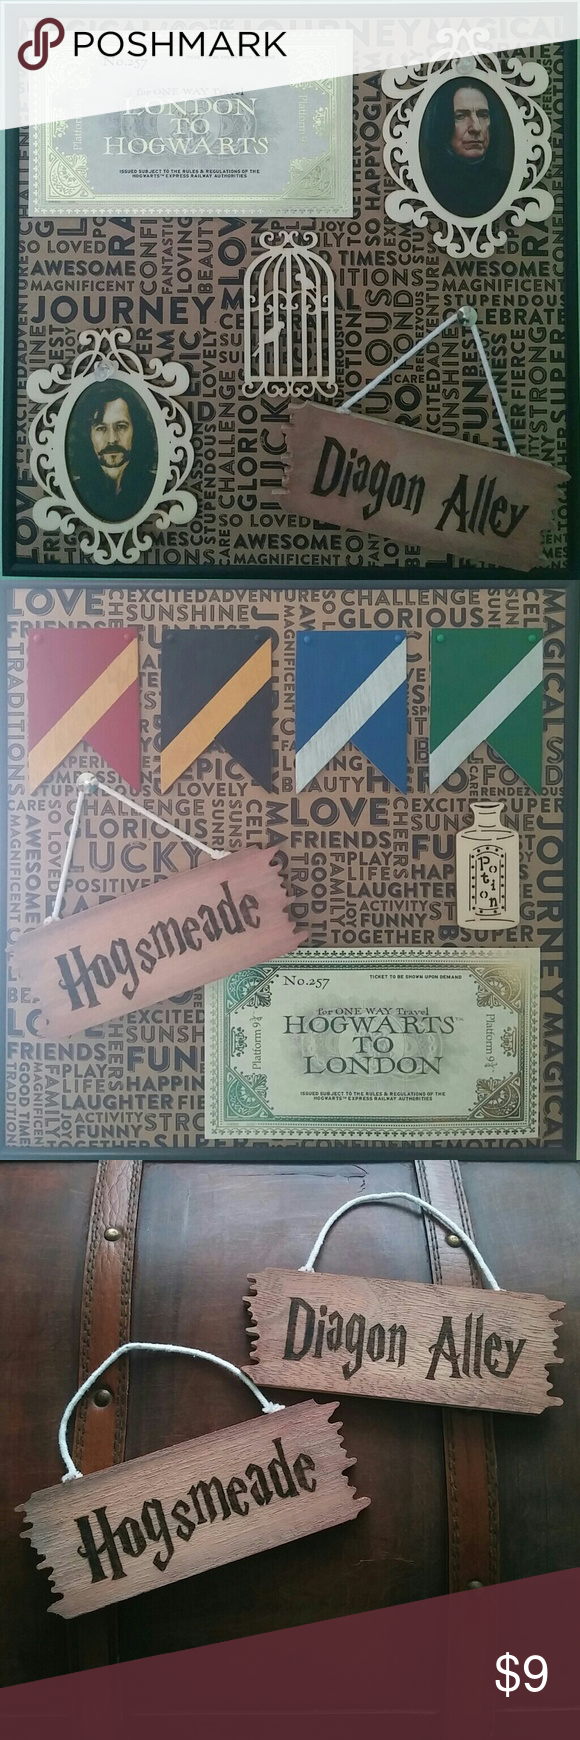 Diagon Alley Hogsmeade mini Harry Potter wood sign Diagon Alley and Hogsmeade mini signs. These are woodburned signs that were painted to look slightly aged. Dimensions: Sign is 6 inches x 2.25 inches. Hangs down at about 2.5 inches. These signs are handmade by me! Commissions are welcome! Check out my closet for more Harry Potter items! Bundle and save! ?? Harry Potter Accessories